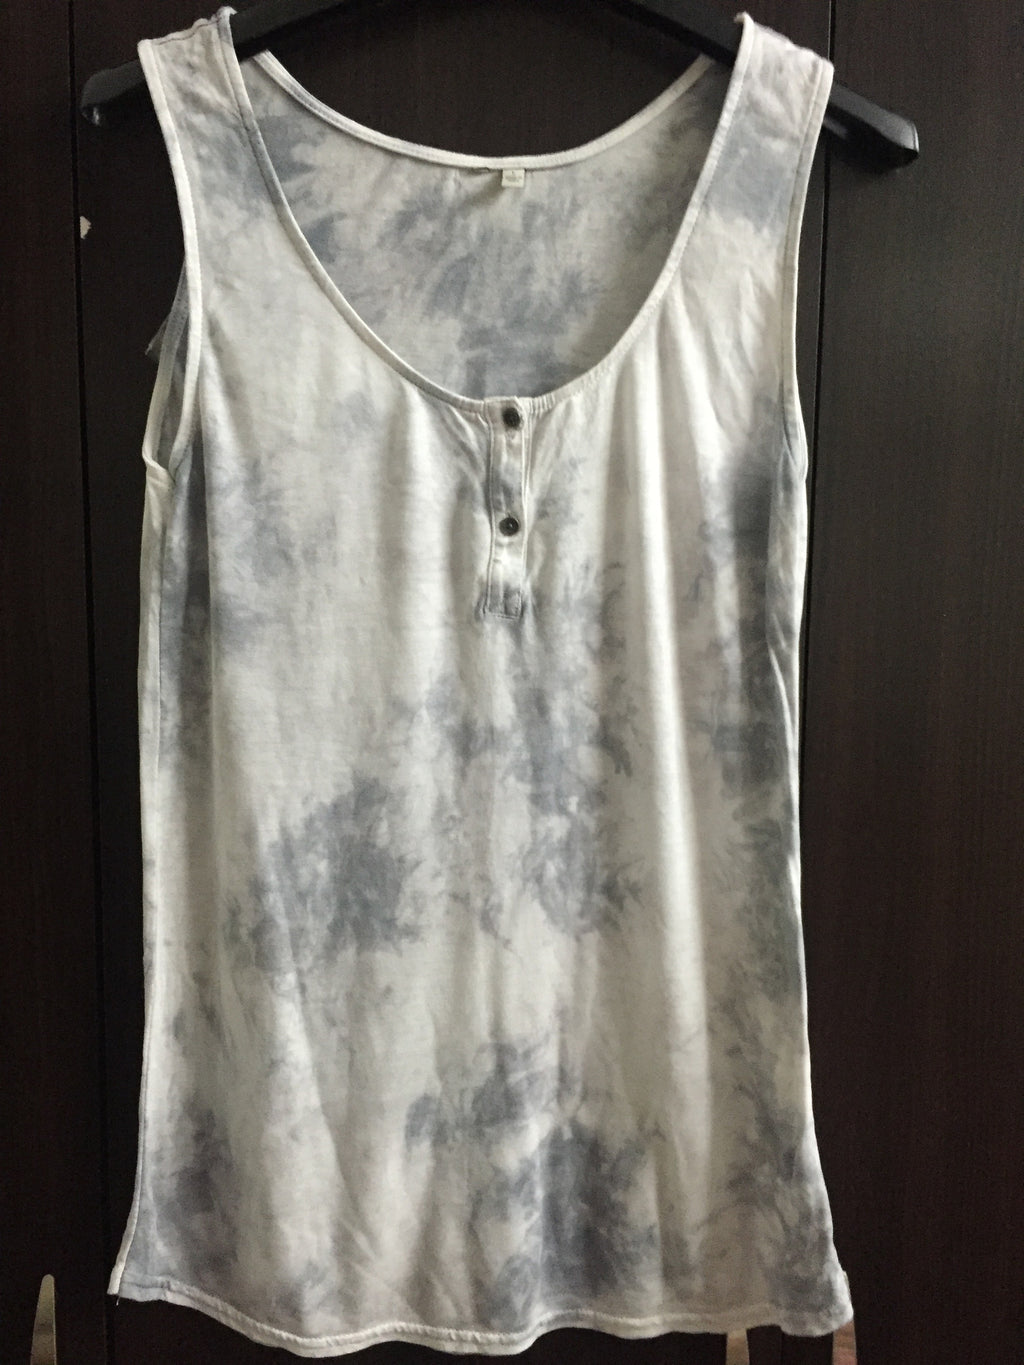 Washed out, Grey and Silver Sleeveless Top.